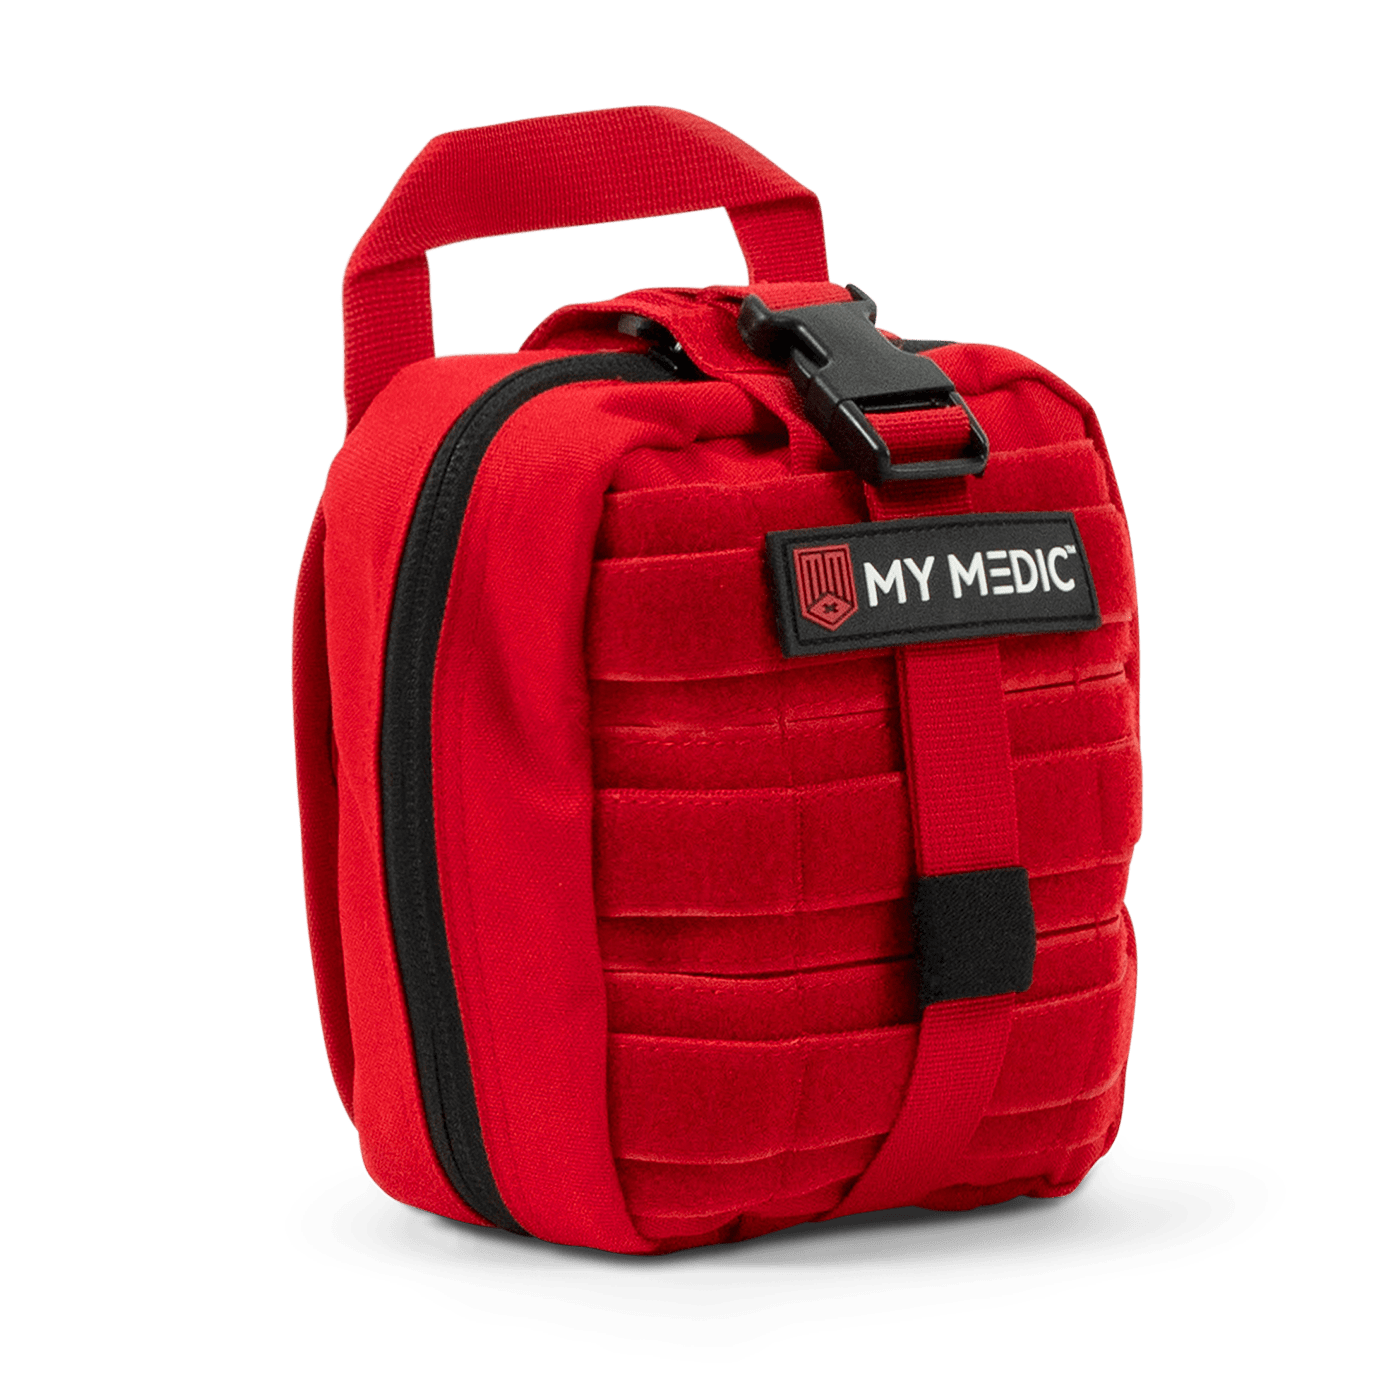 MyMedic: Extra 20% off Sitewide